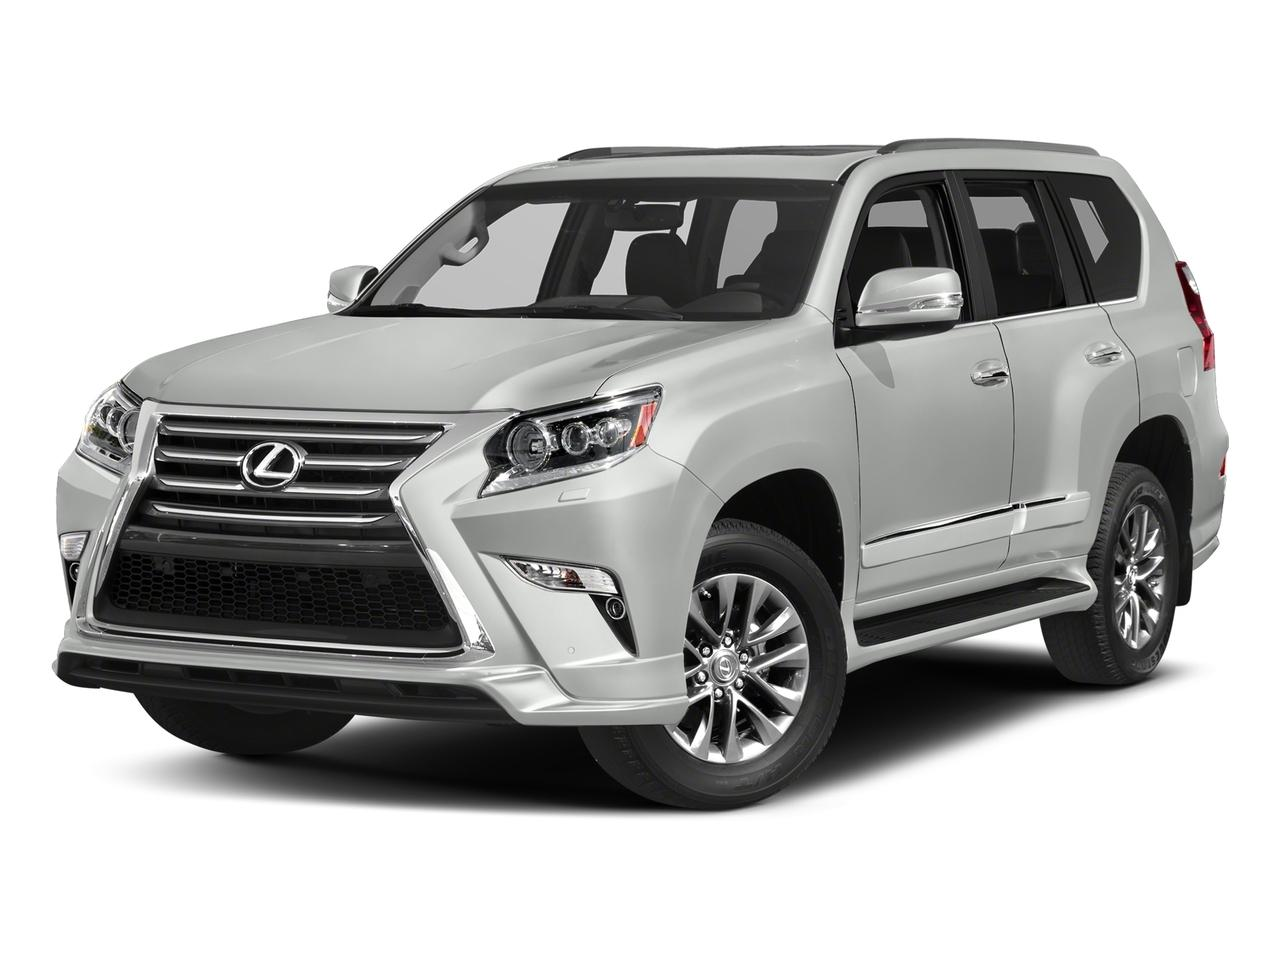 2017 Lexus GX 460 Vehicle Photo in Portland, OR 97225